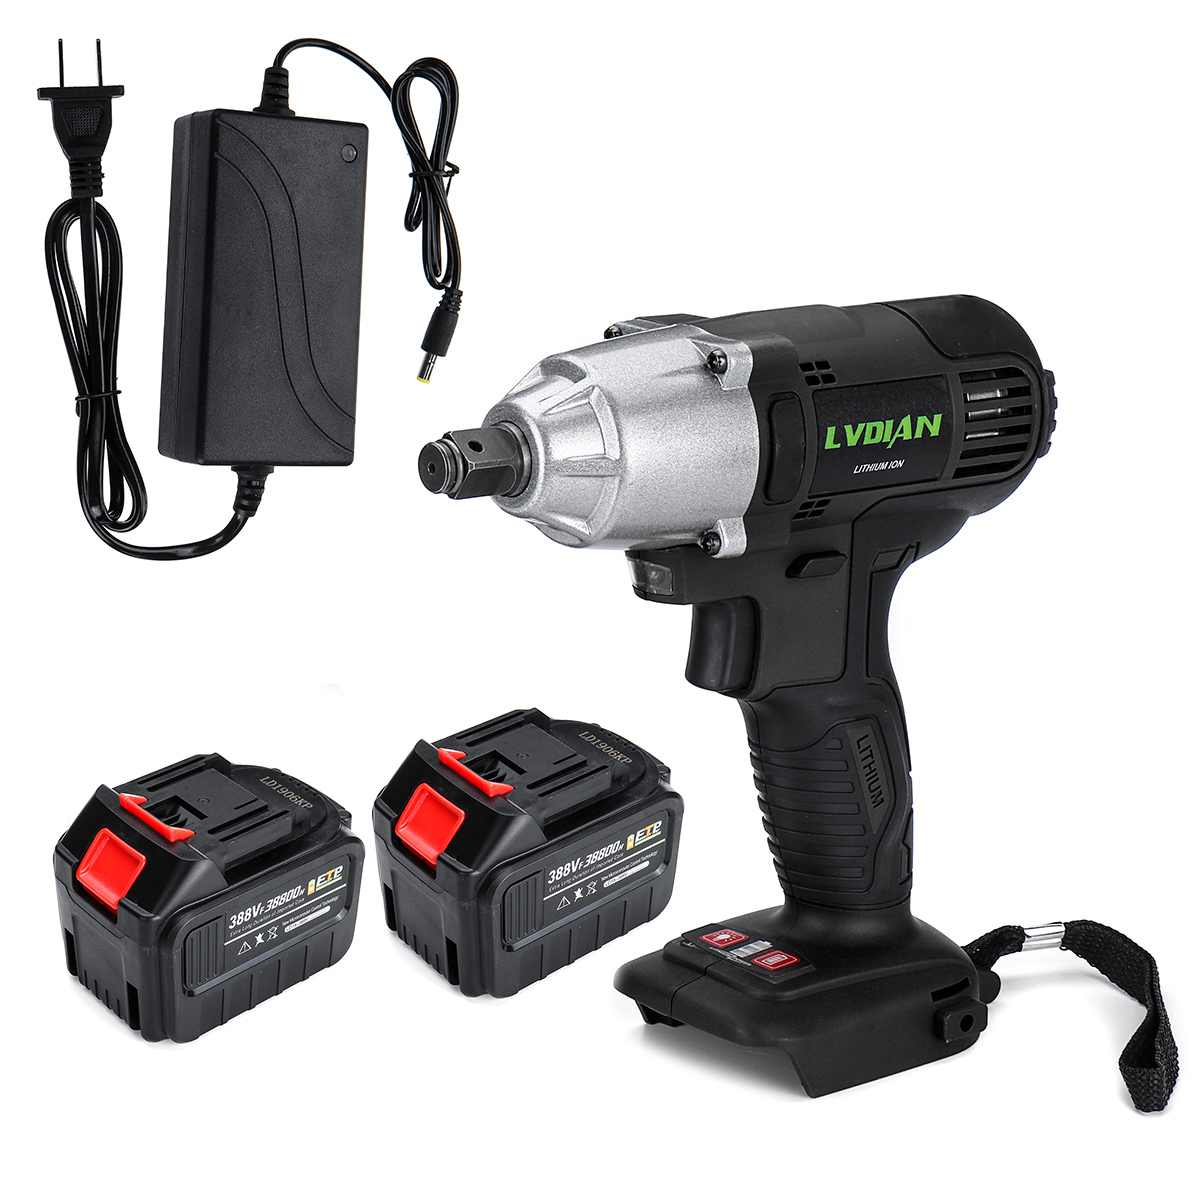 1/2 Electric Wrench 388VF Cordless Electric Impact Wrench Driver Hand Drill 330Nm 38800mAh 2-Battery Power Tool